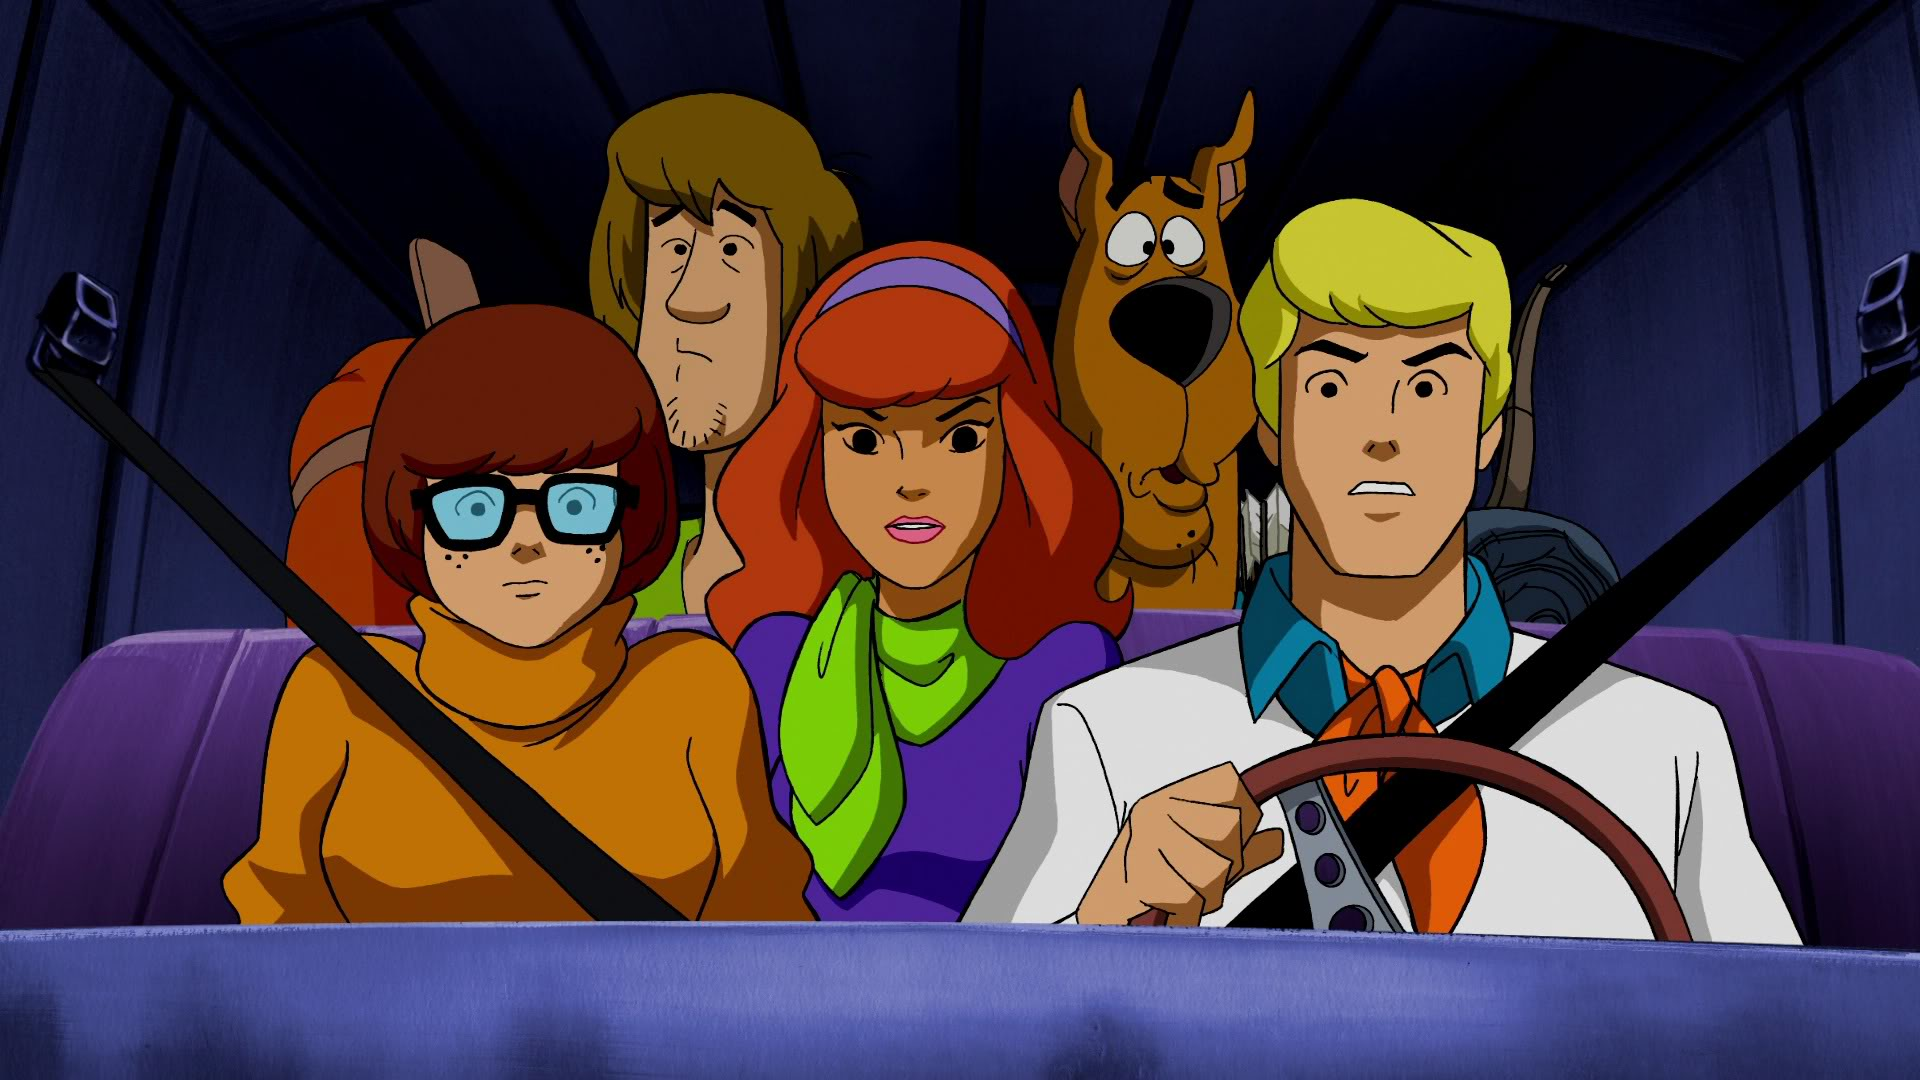 Scooby-Doo HD Wallpaper | Background Image | 1920x1080 | ID:443812 - Wallpaper Abyss